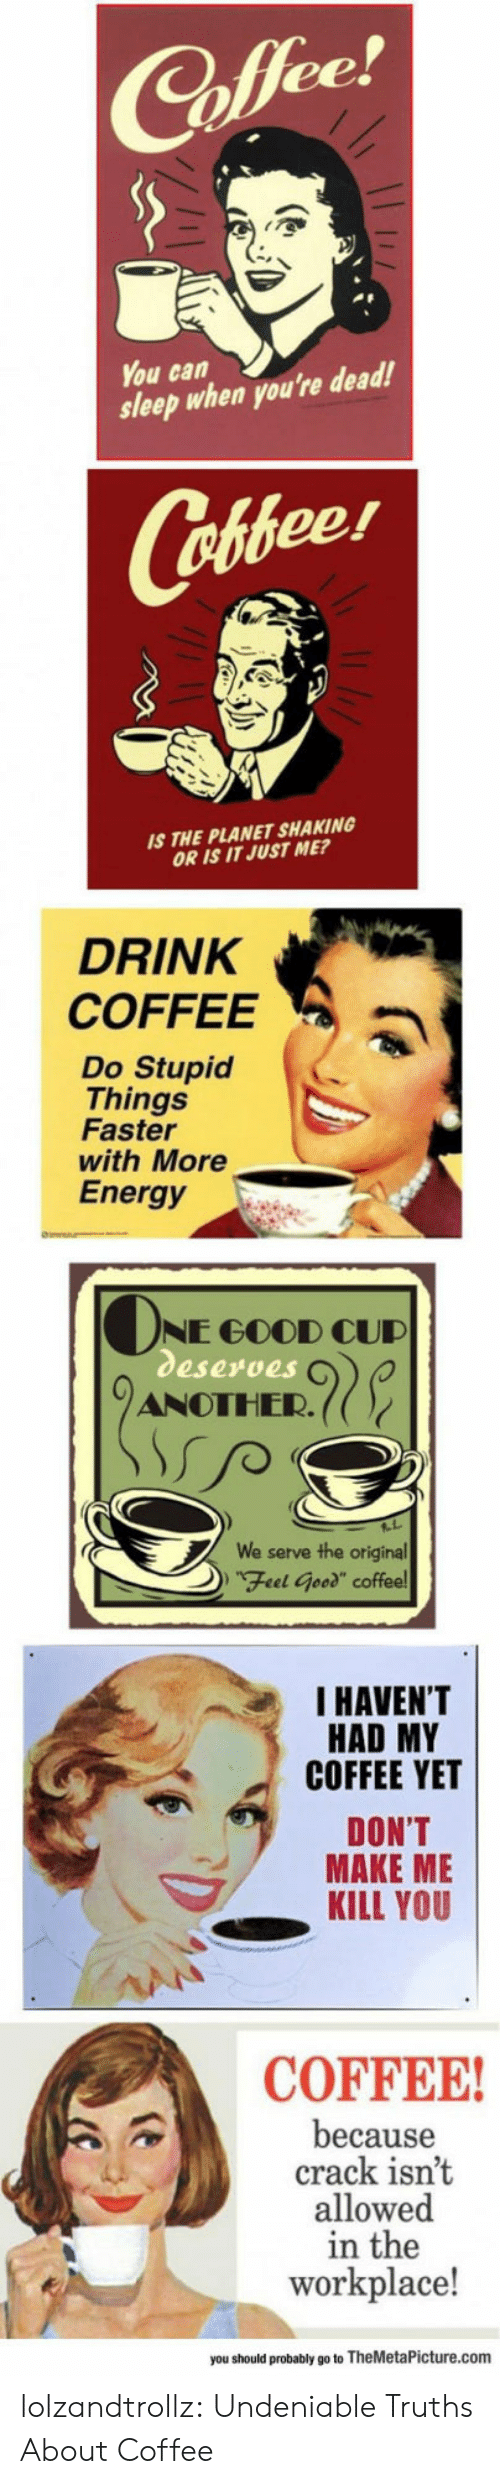 """cud: ее  You can  sleep when you're dead!  Cofeer  S THE PLANET SHAKING  OR IS IT JUST ME?  DRINK  COFFEEa  Do Stupid  Things  Faster  with More  Energy  NE GOOD CUD  eserves  ANOTHER.((  serve the original  DFeel Geed"""" coffee  We  I HAVEN'T  HAD MY  COFFEE YET  DON'T  MAKE ME  KILL YOU  COFFEE  because  crack isnt  allowed  in the  workplace!  you should probably go to TheMetaPicture.com lolzandtrollz:  Undeniable Truths About Coffee"""